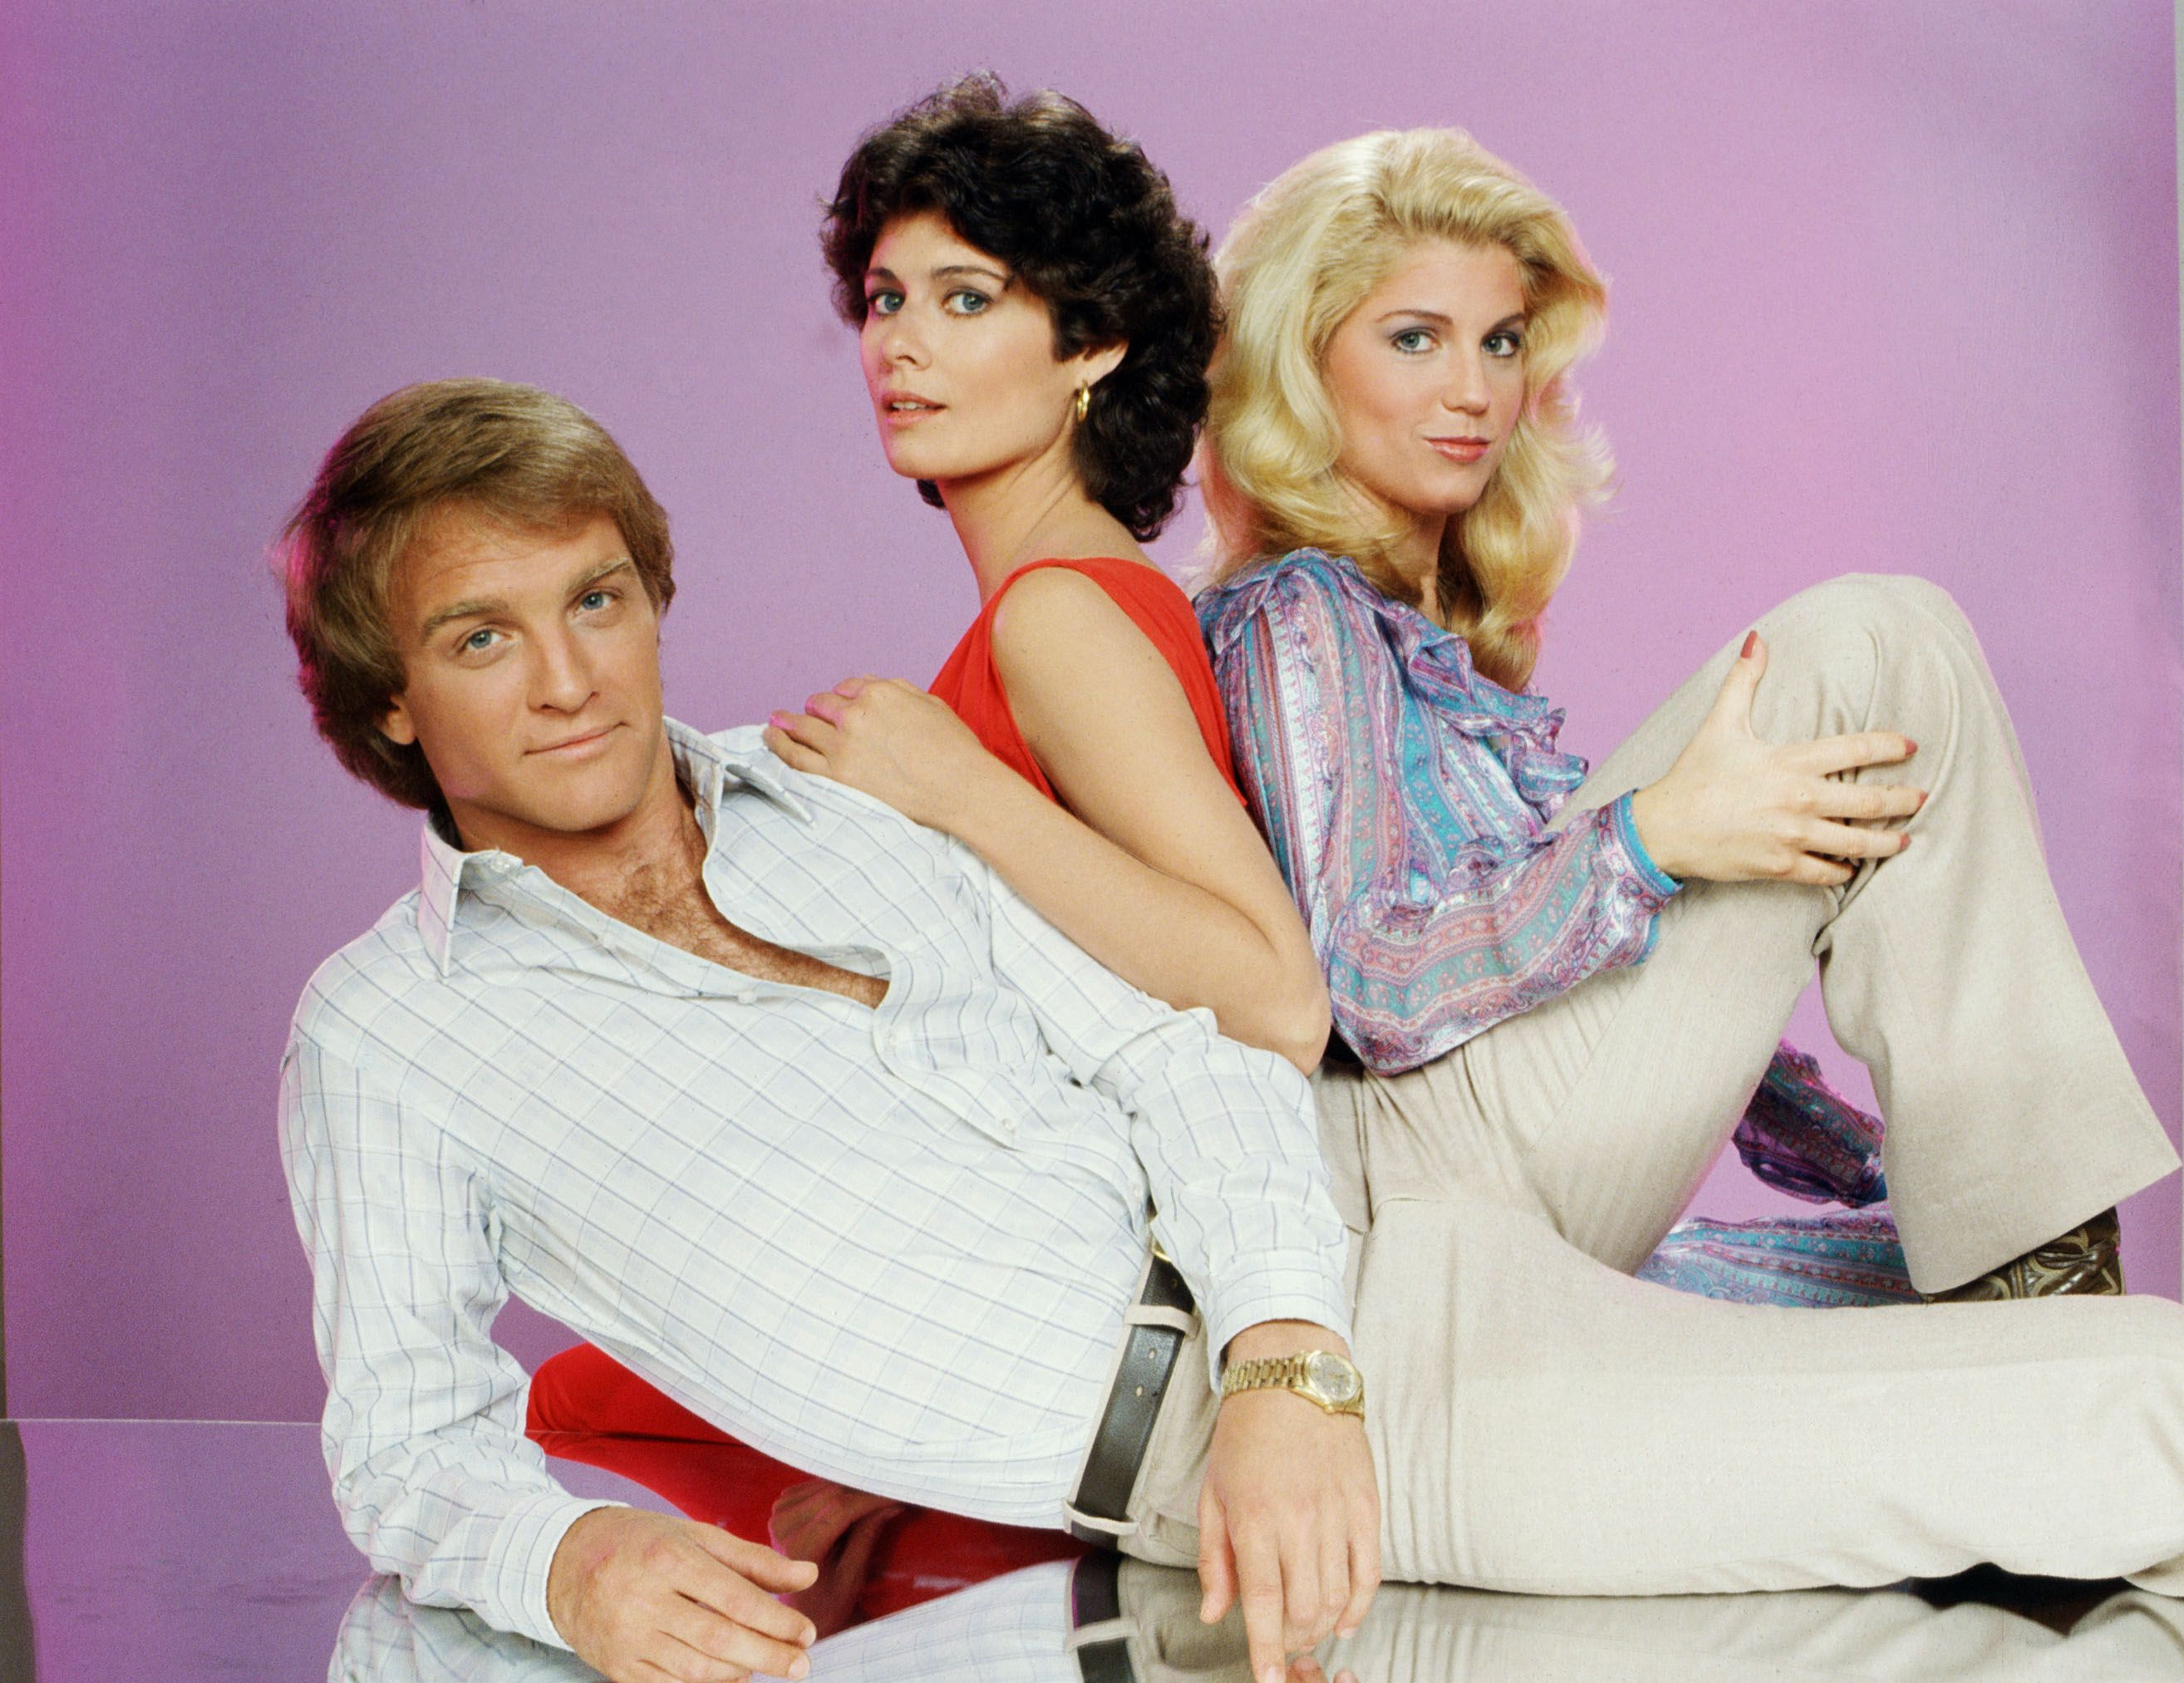 """""""The Young and the Restless"""" poster featuring Terry Lester as Jack Abbott, Deborah Adair as Jill Foster Abbott and Lilibet Stern as Patty Williams, 1980. 